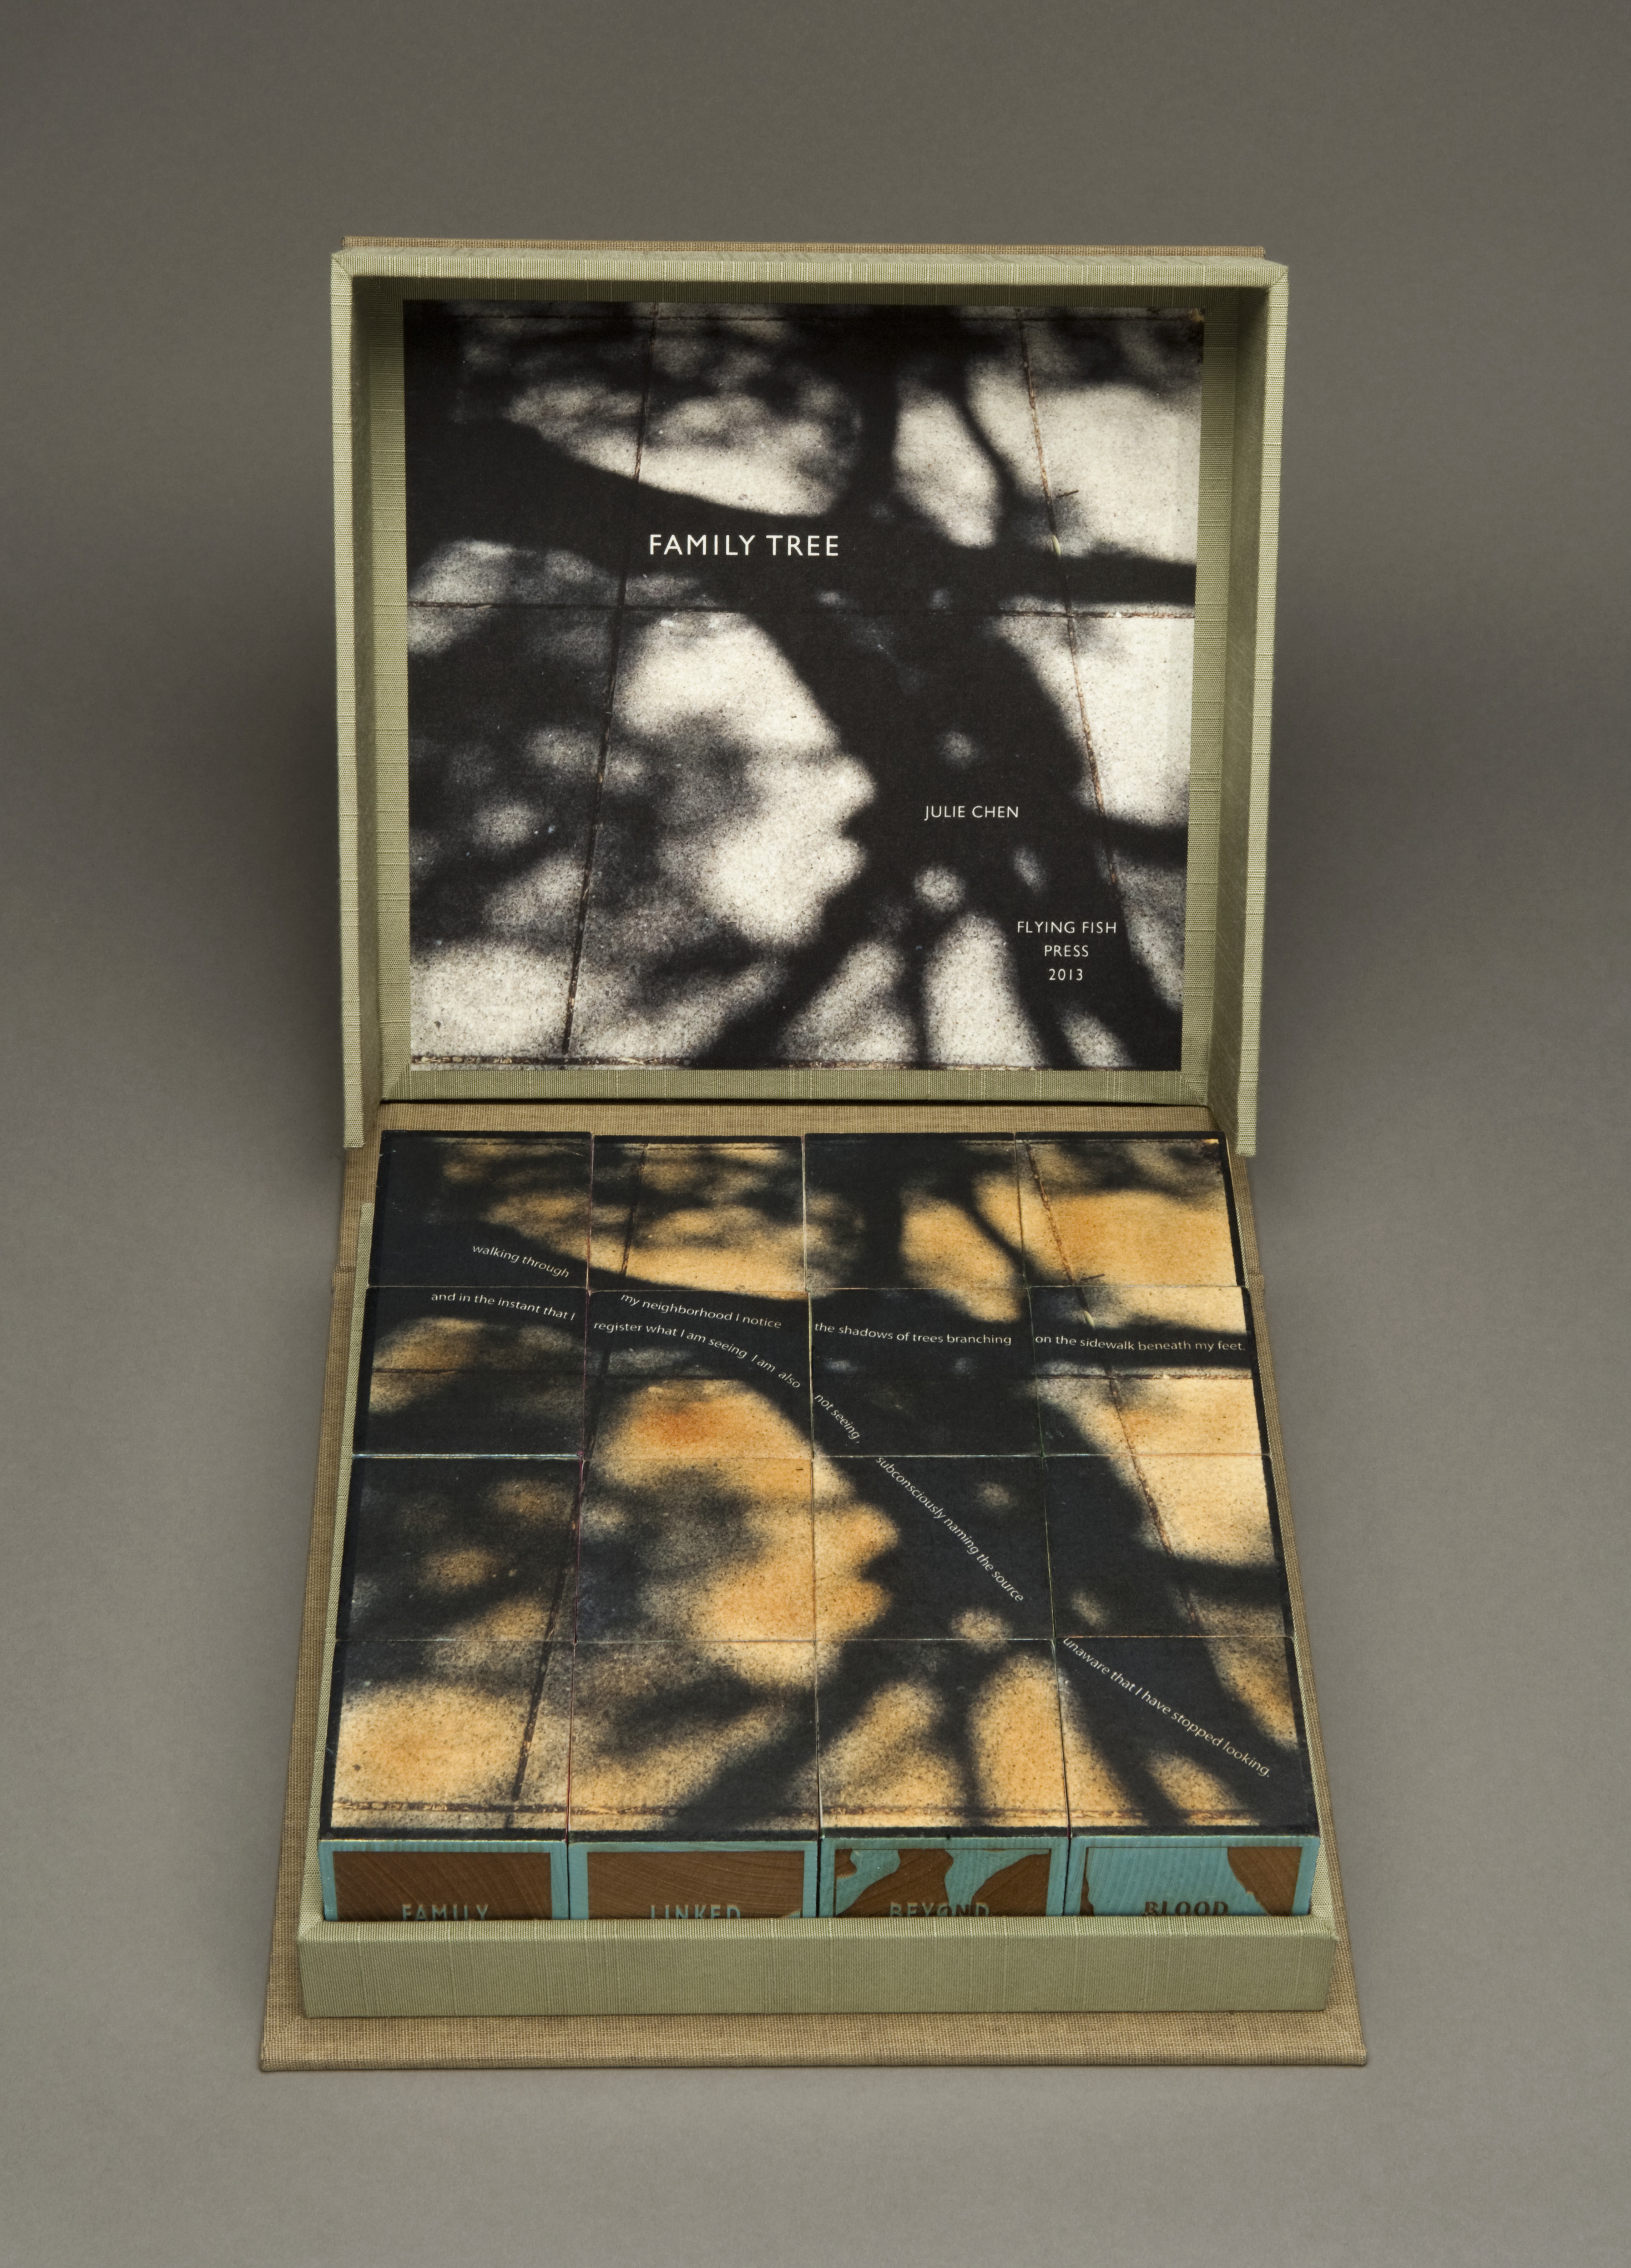 A box sits open revealing 16 cubes arranged in a square to show an orange and black photograph of tree branches. Inside the box lid is the same photograph in black and white, and the words